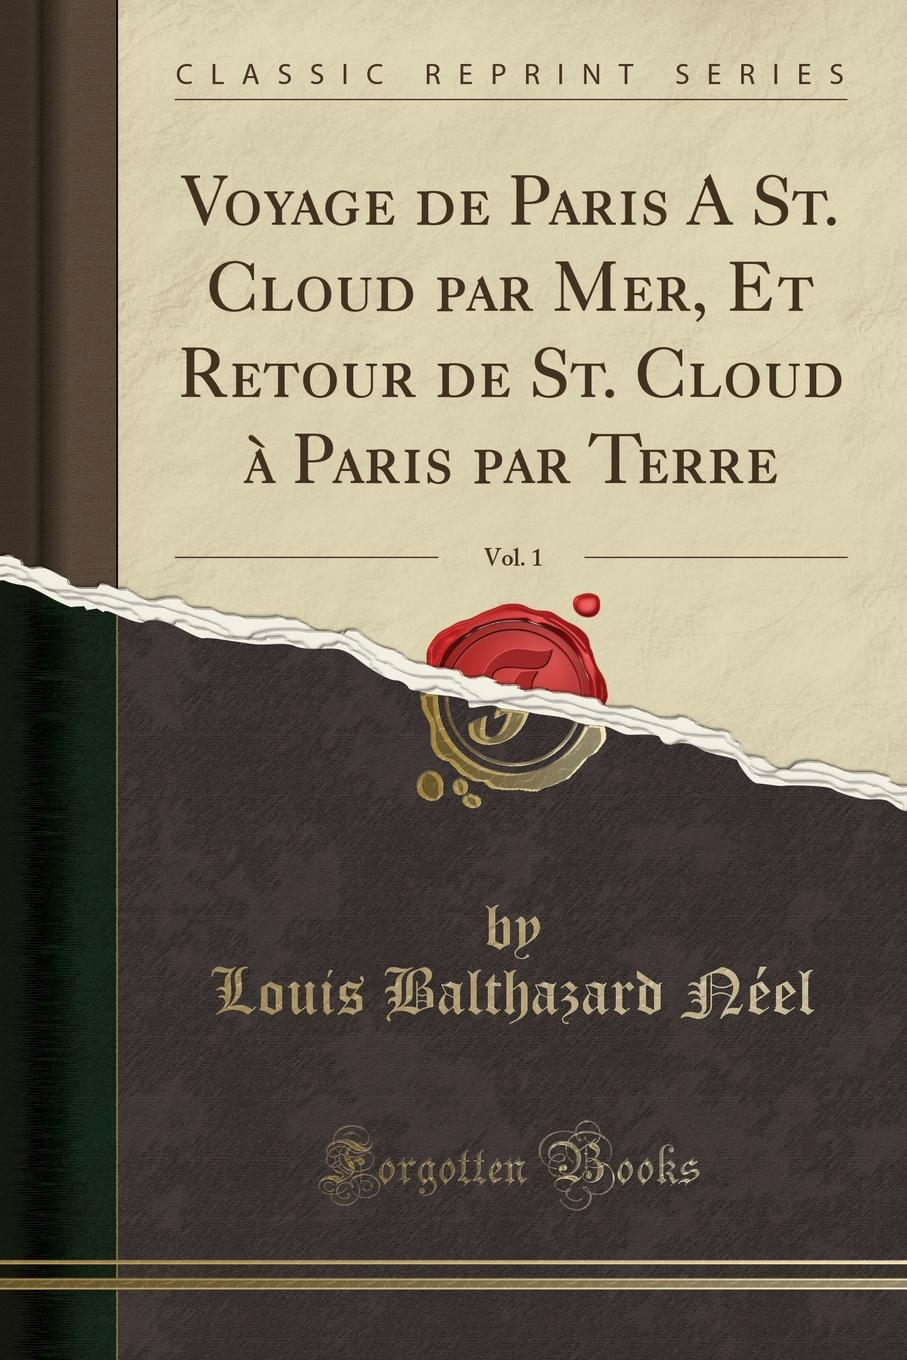 Louis Balthazard Néel Voyage de Paris A St. Cloud par Mer, Et Retour de St. Cloud a Paris par Terre, Vol. 1 (Classic Reprint)